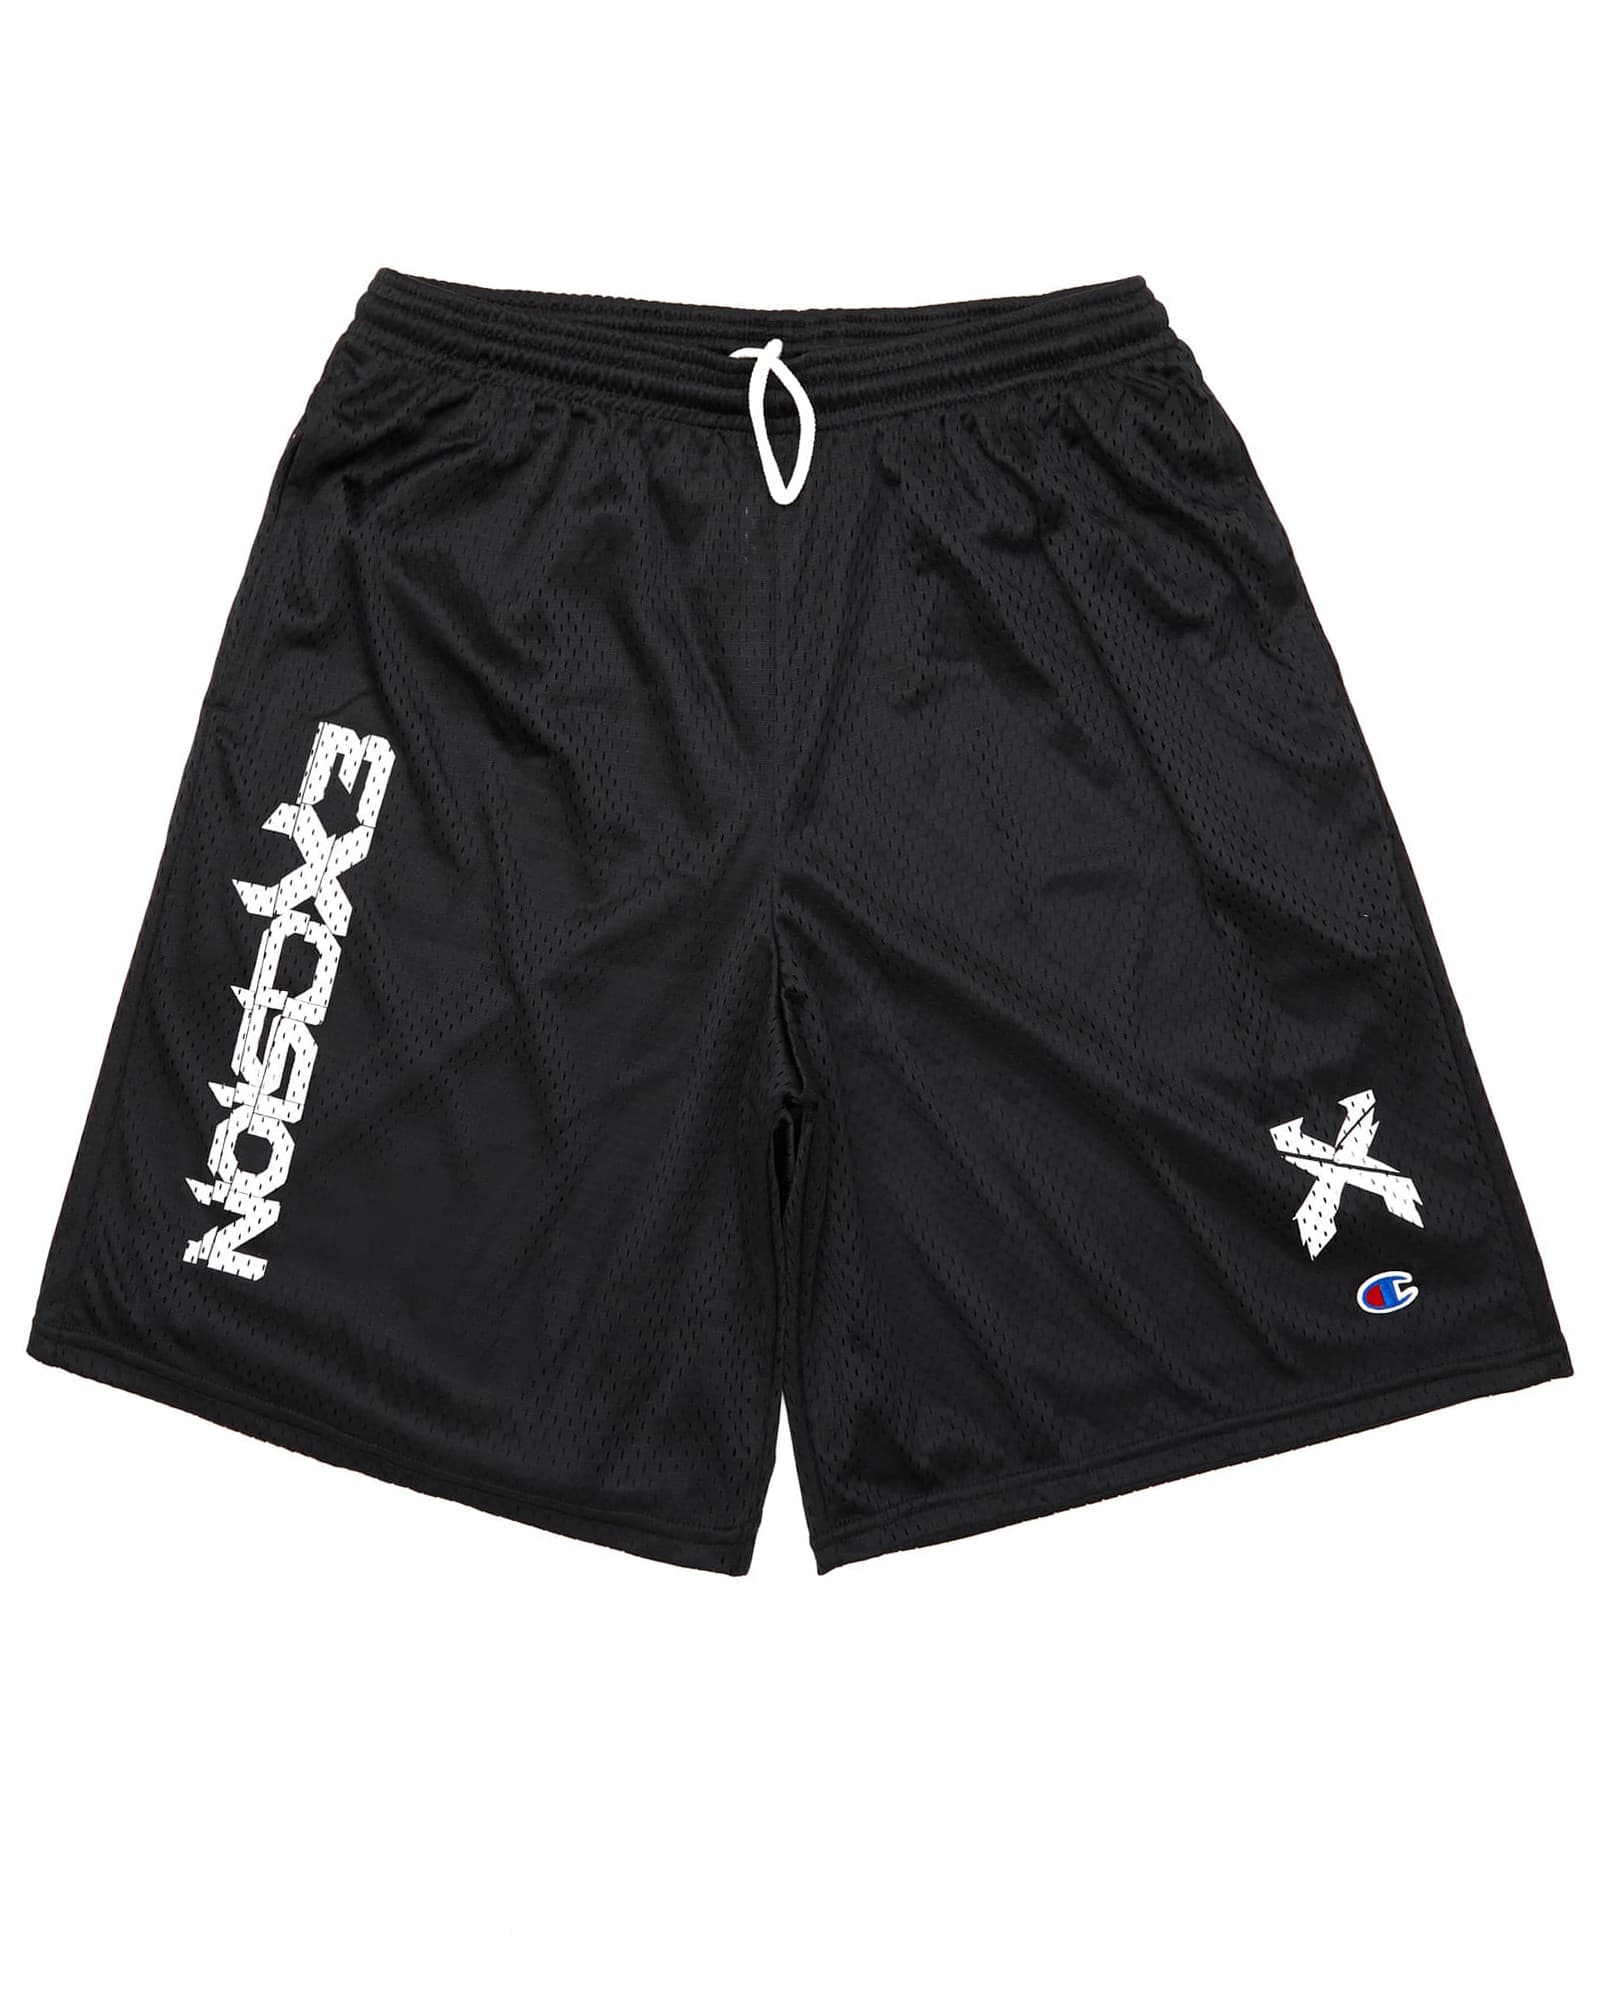 Excision x Champion 'Sliced' Logo Basketball Shorts